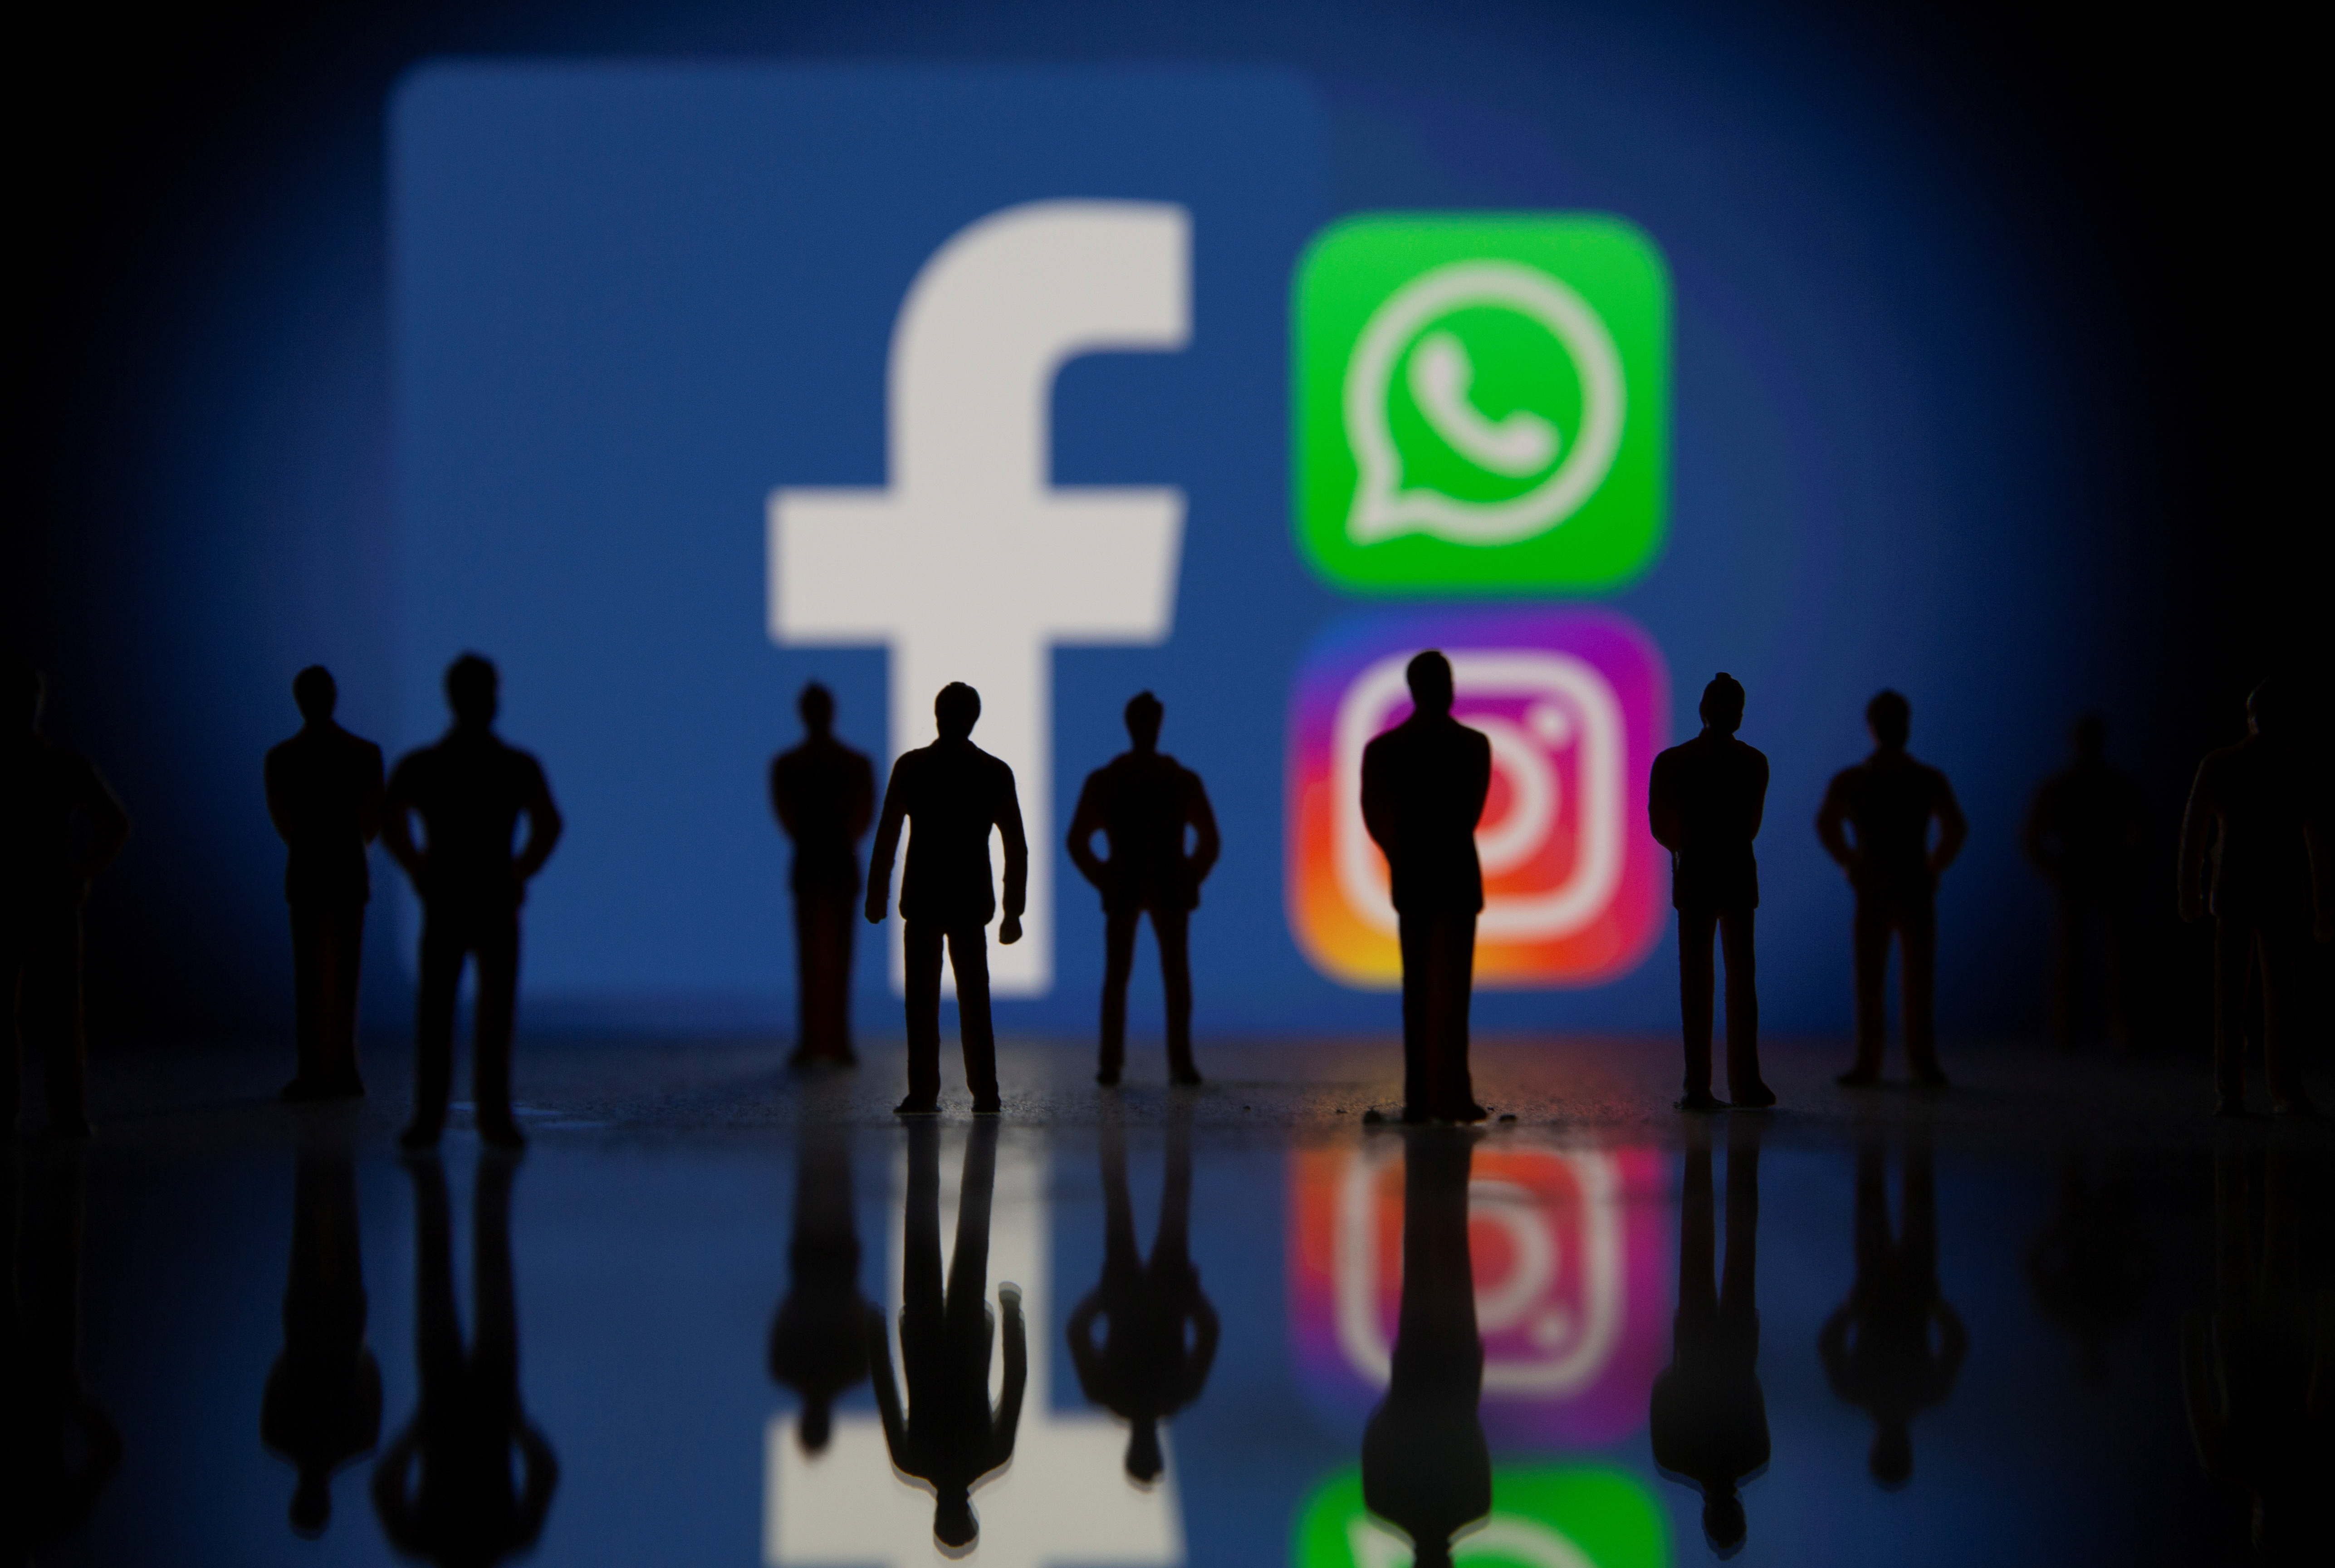 Small toy figures are seen in front of displayed Facebook, Whatsapp and Instagram logos in this illustration taken October 4, 2021. REUTERS/Dado Ruvic/Illustration